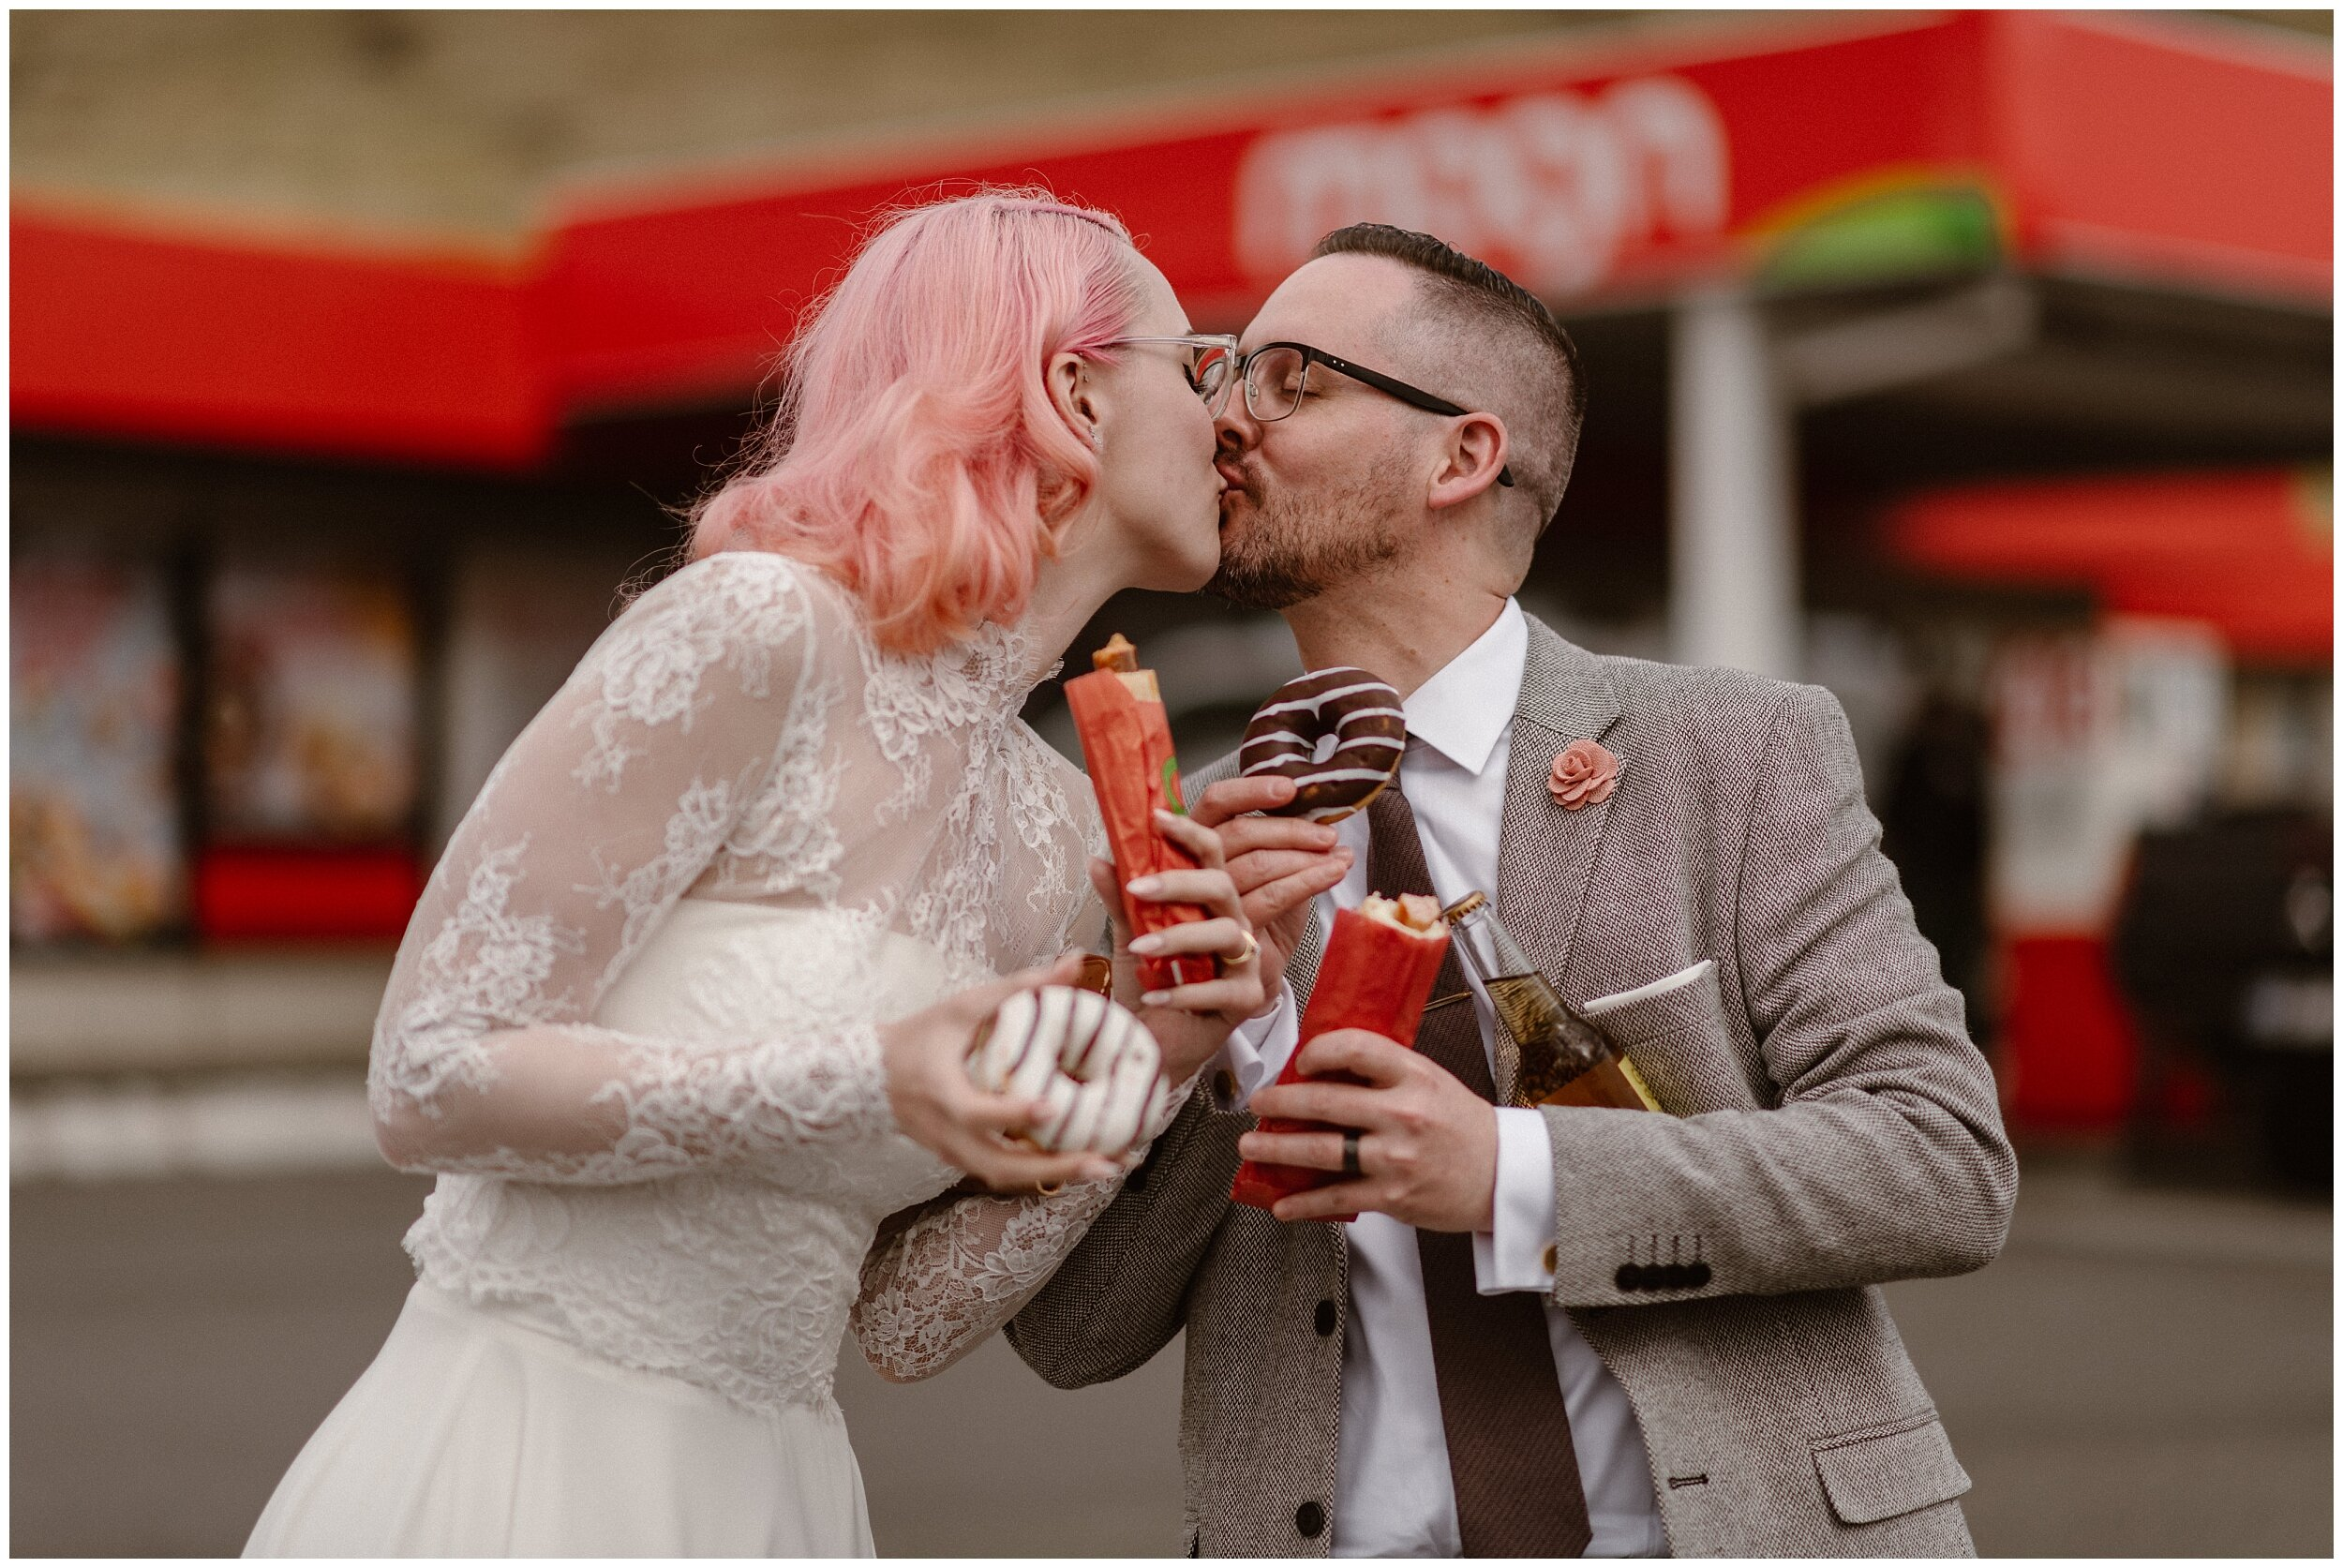 Elaura and Daryn hold gas station hot dogs in their hands (a Faroe Island must-have meal) as they kiss each other. The hot dog stop immediatley followed their hike down from the elopement ceremony and right before they head up for their second location for their elopement photos.